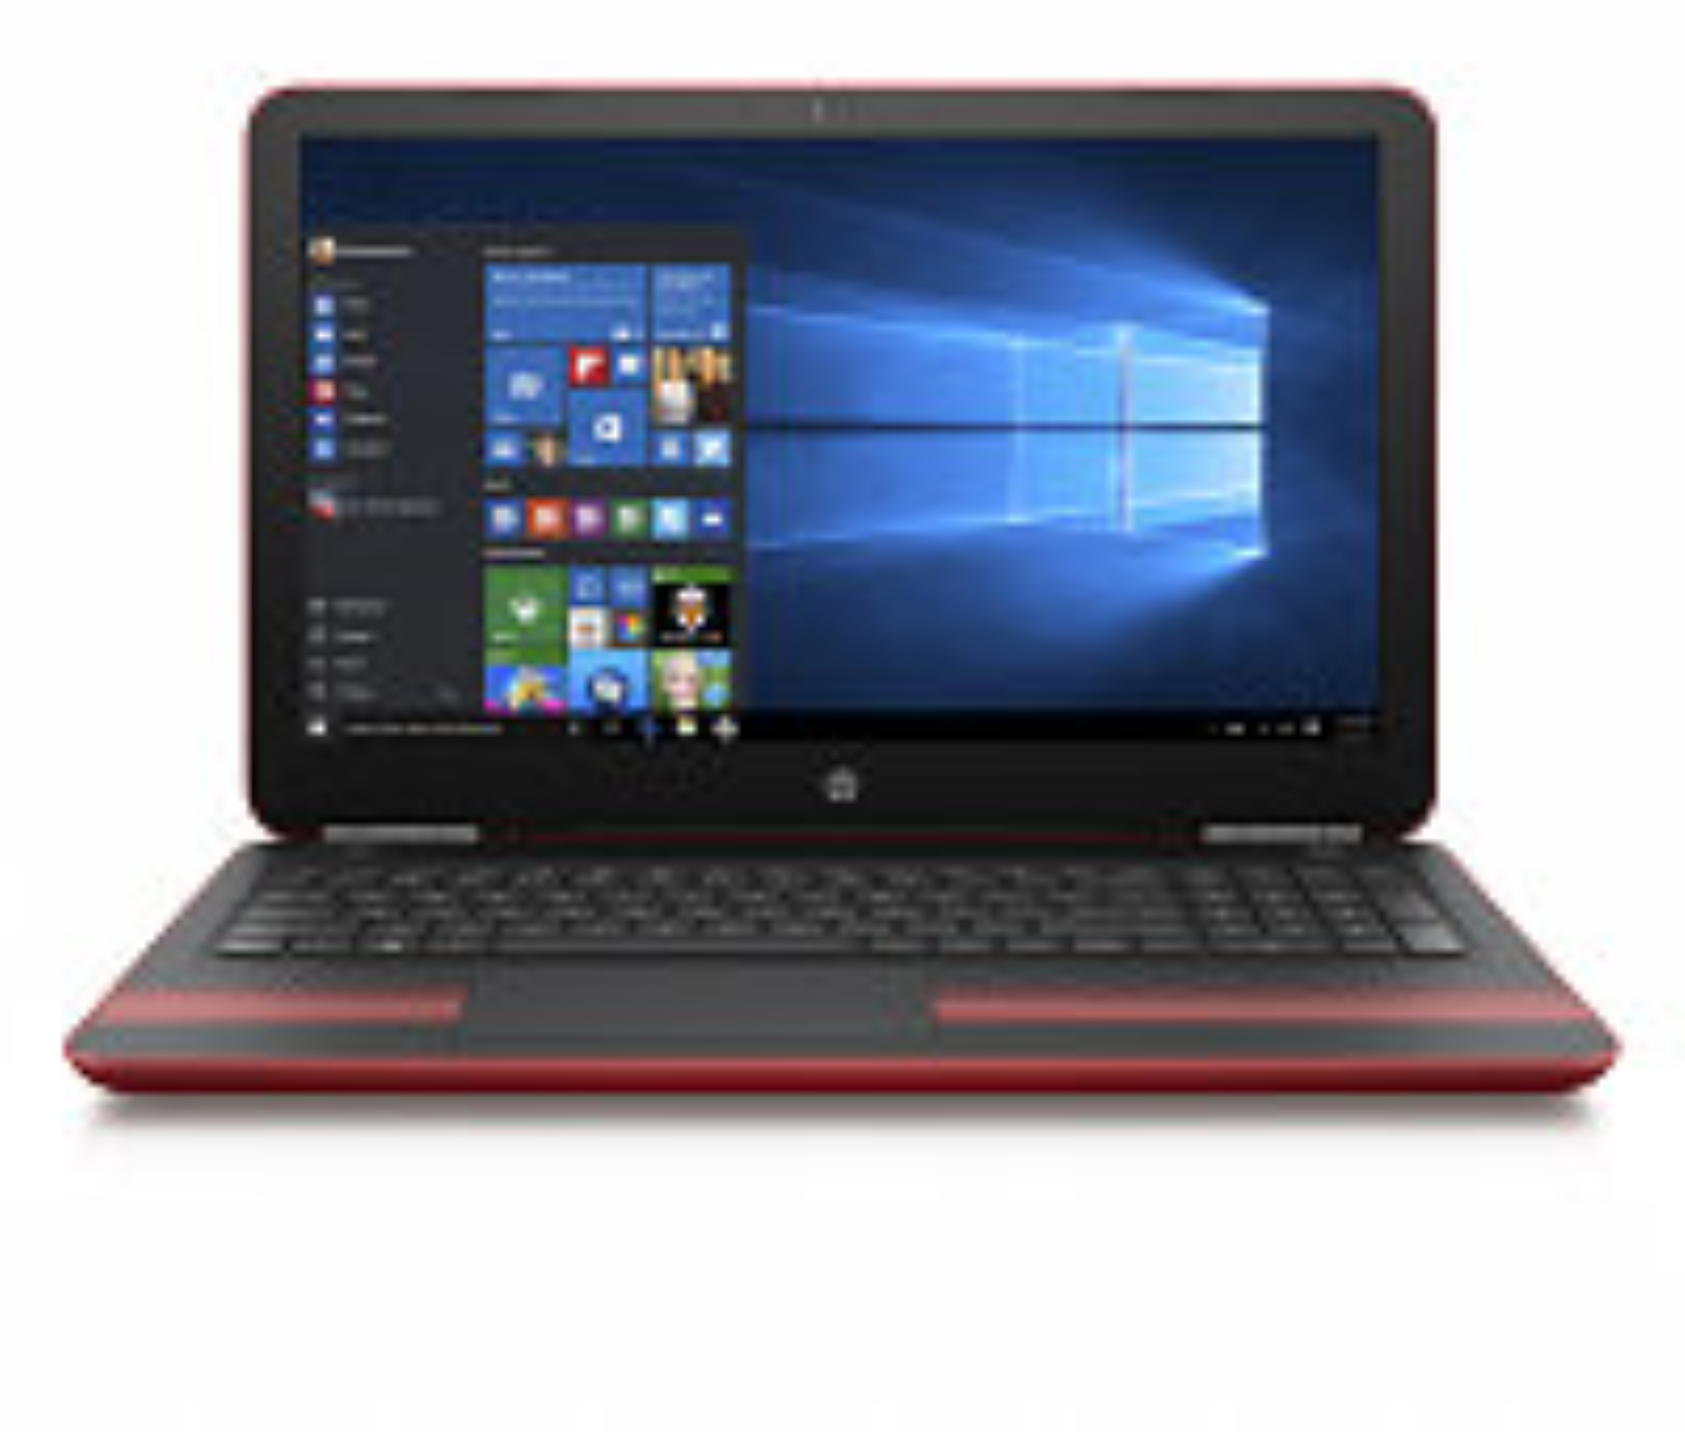 HP Pavilion 15-au007nc/Intel i3-6100U/8GB/256GB SSD/DVDRW/GeForce 940M 2GB/15,6 FHD/Win 10/červená